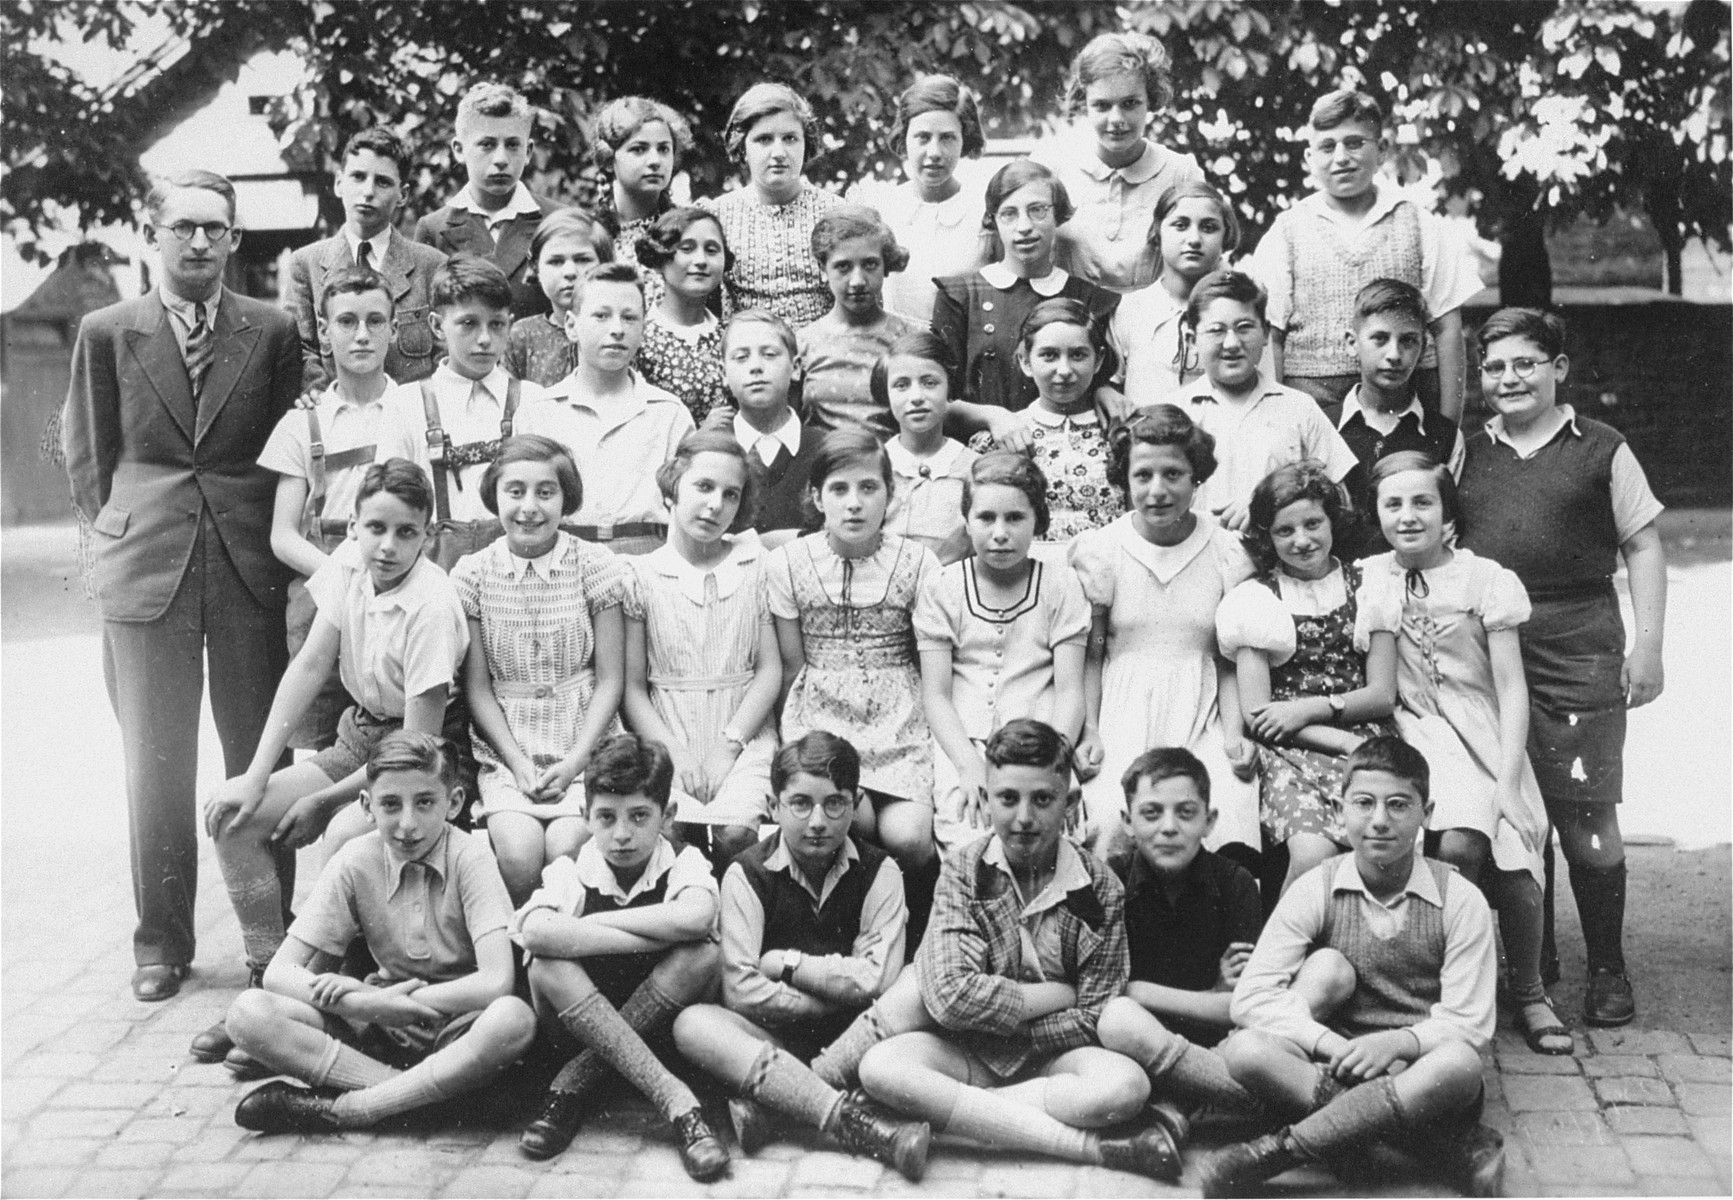 Group portrait of students in the seventh form at a Jewish school in Karlsruhe, Germany.   Among those pictured are Louis Maier (top row, second boy from the left) and Klare Marianne Baer (back row, third student from the left).